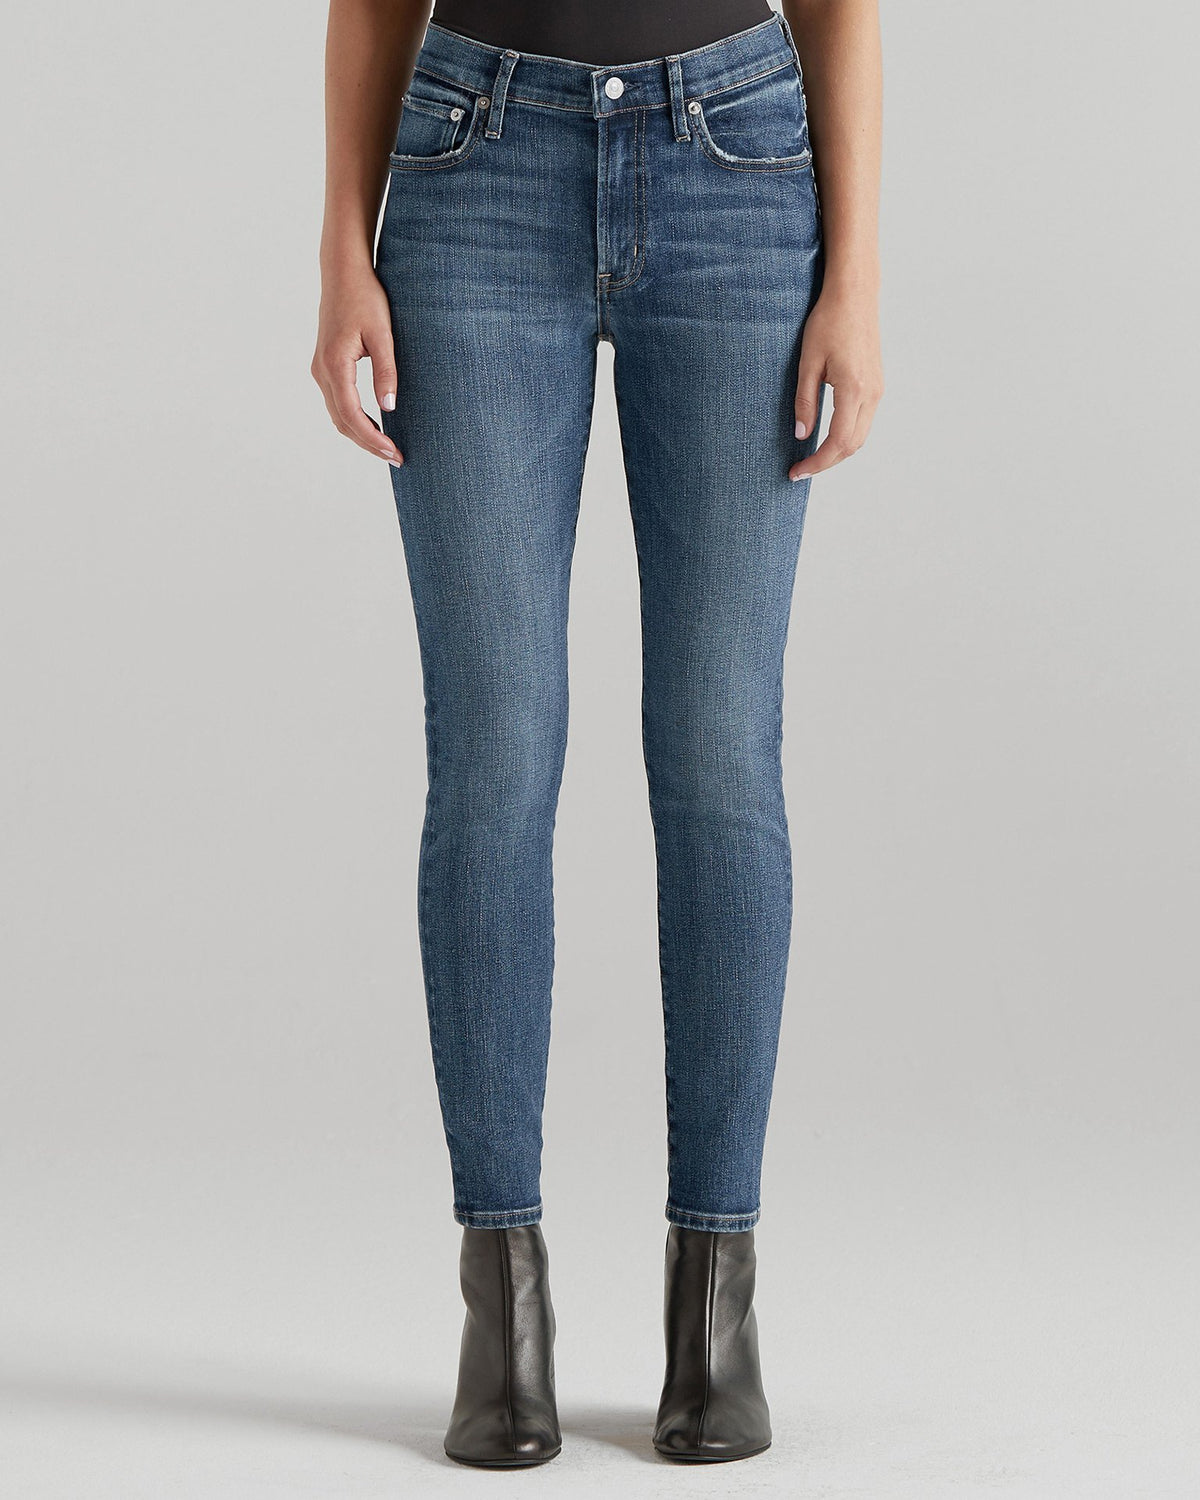 Edwin Denim Nevermind / 24 Pixie in Nevermind